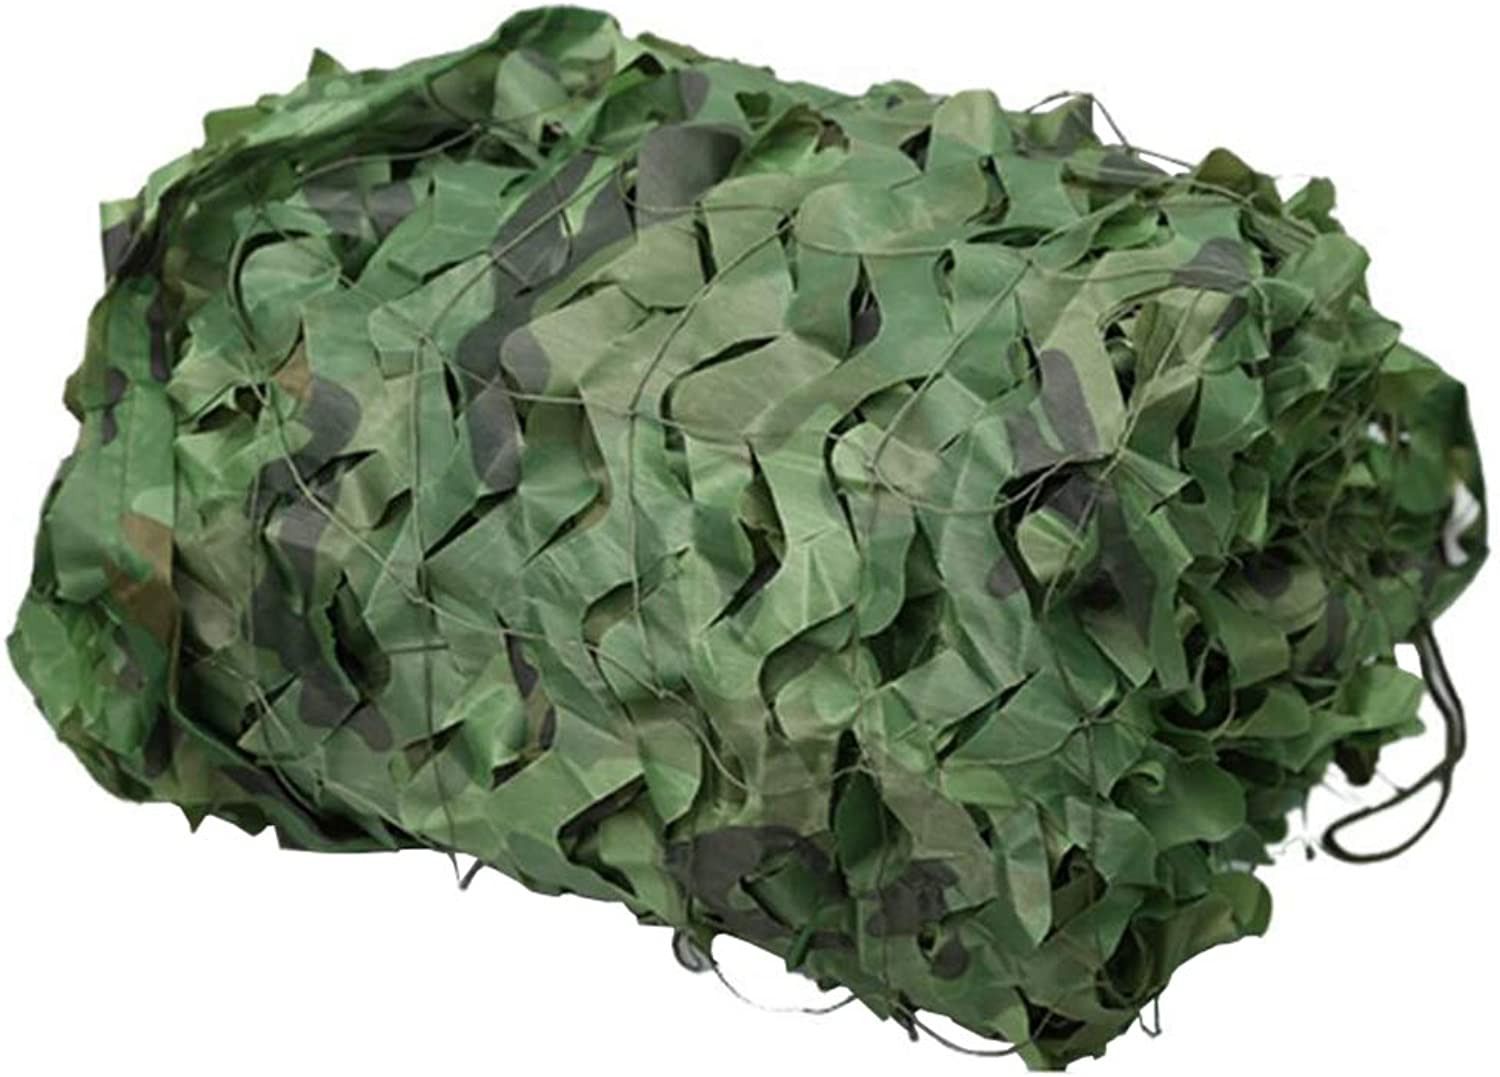 Camouflage Netting Sunscreen Nets Woodland Camo Net Outdoor Jungle Sunshade Decoration Hunting Blind Shooting Camping Photography